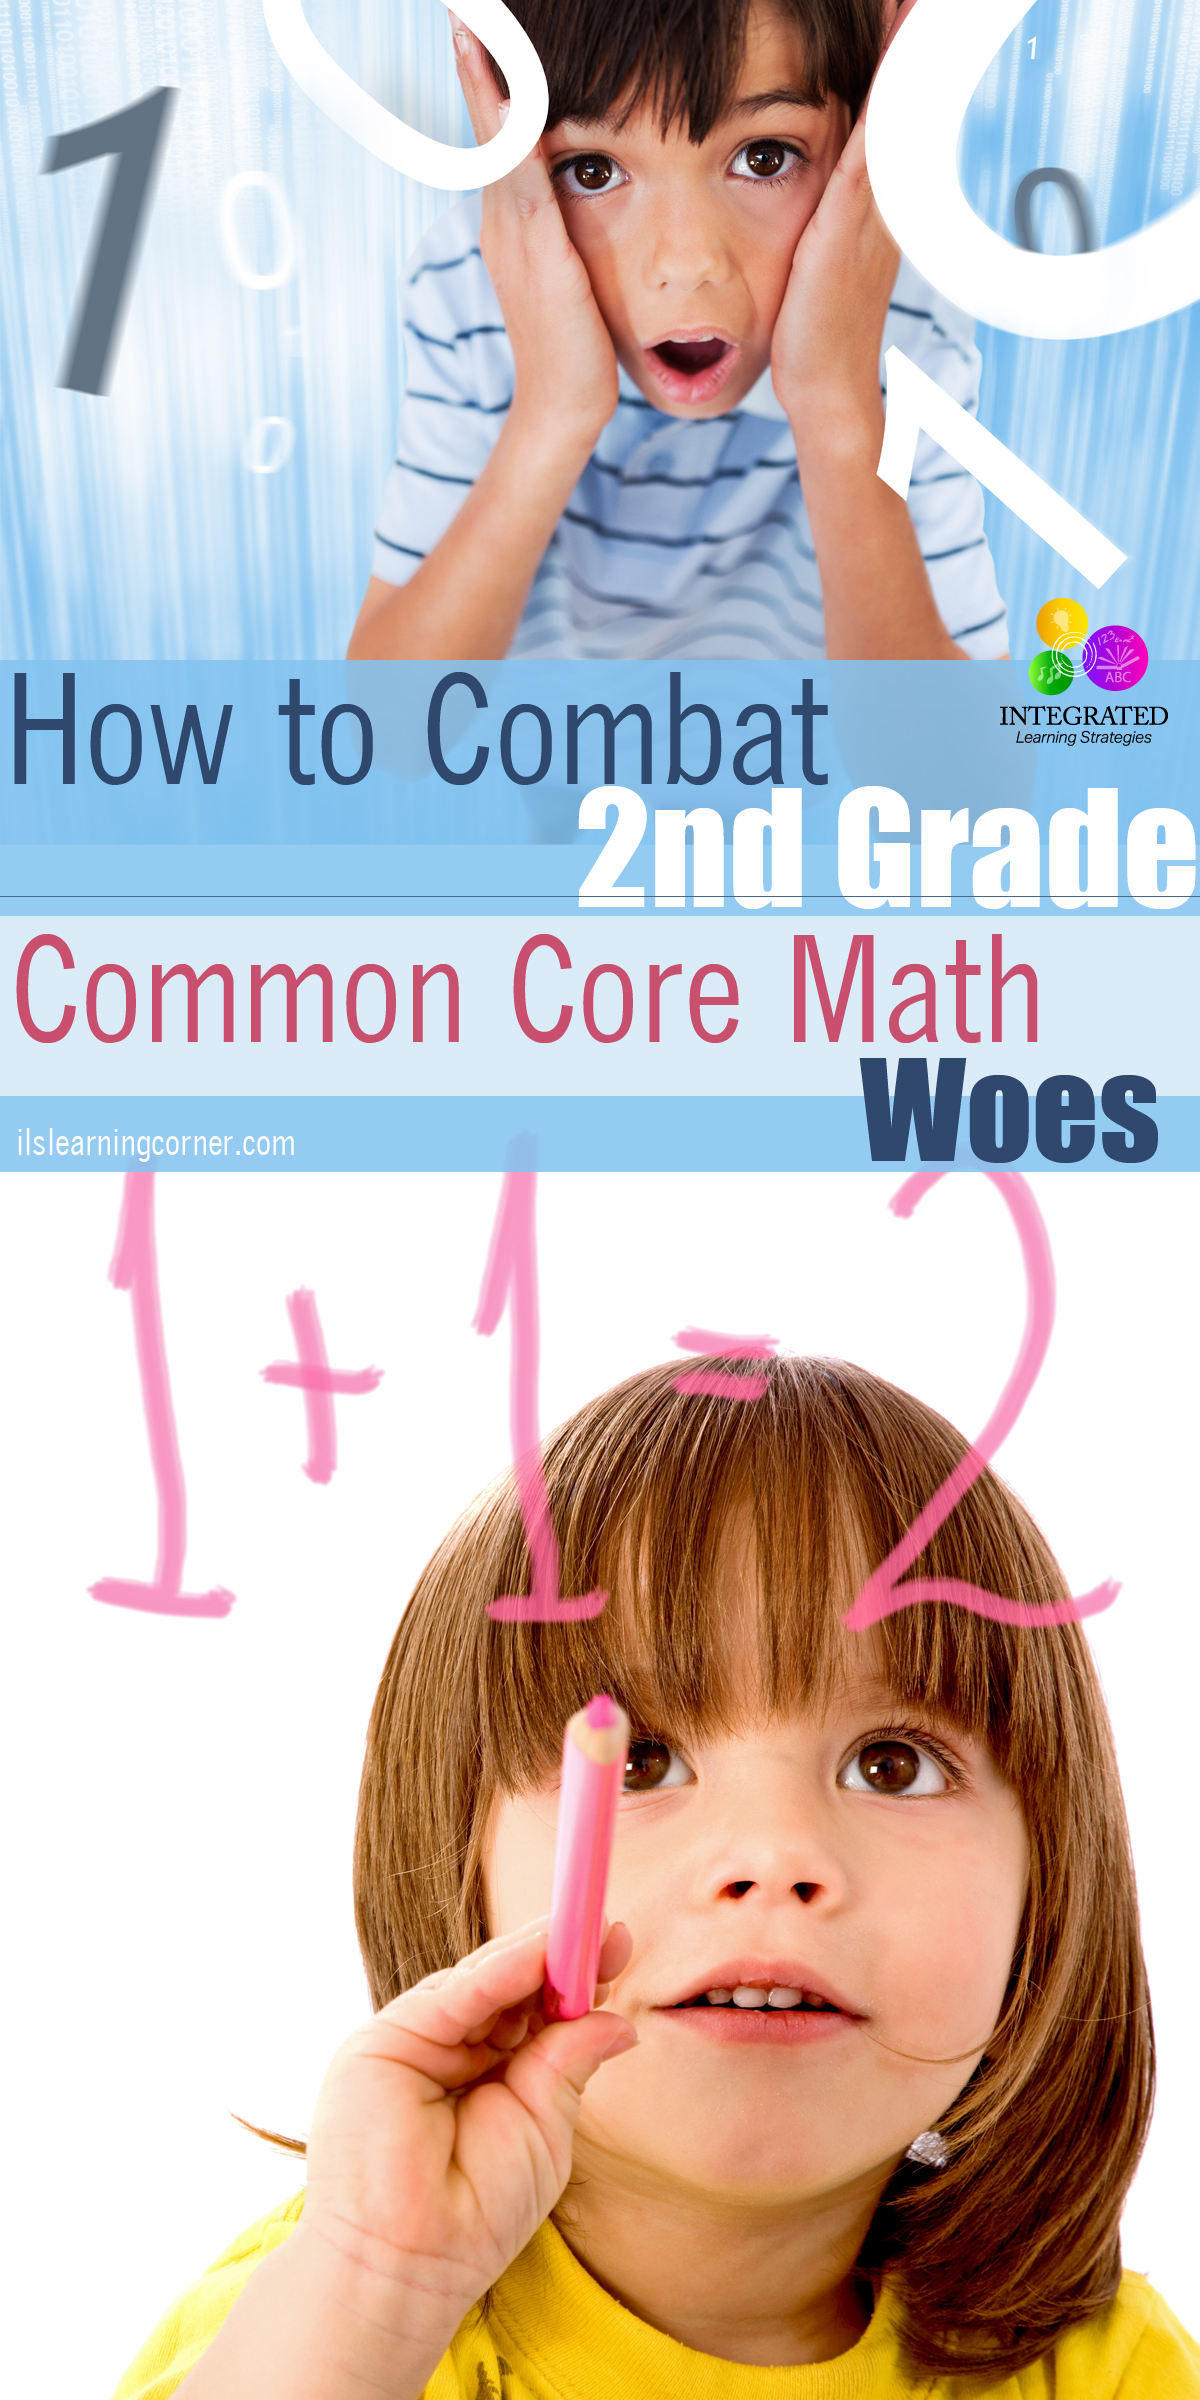 How To Combat 2nd Grade Common Core Math Woes